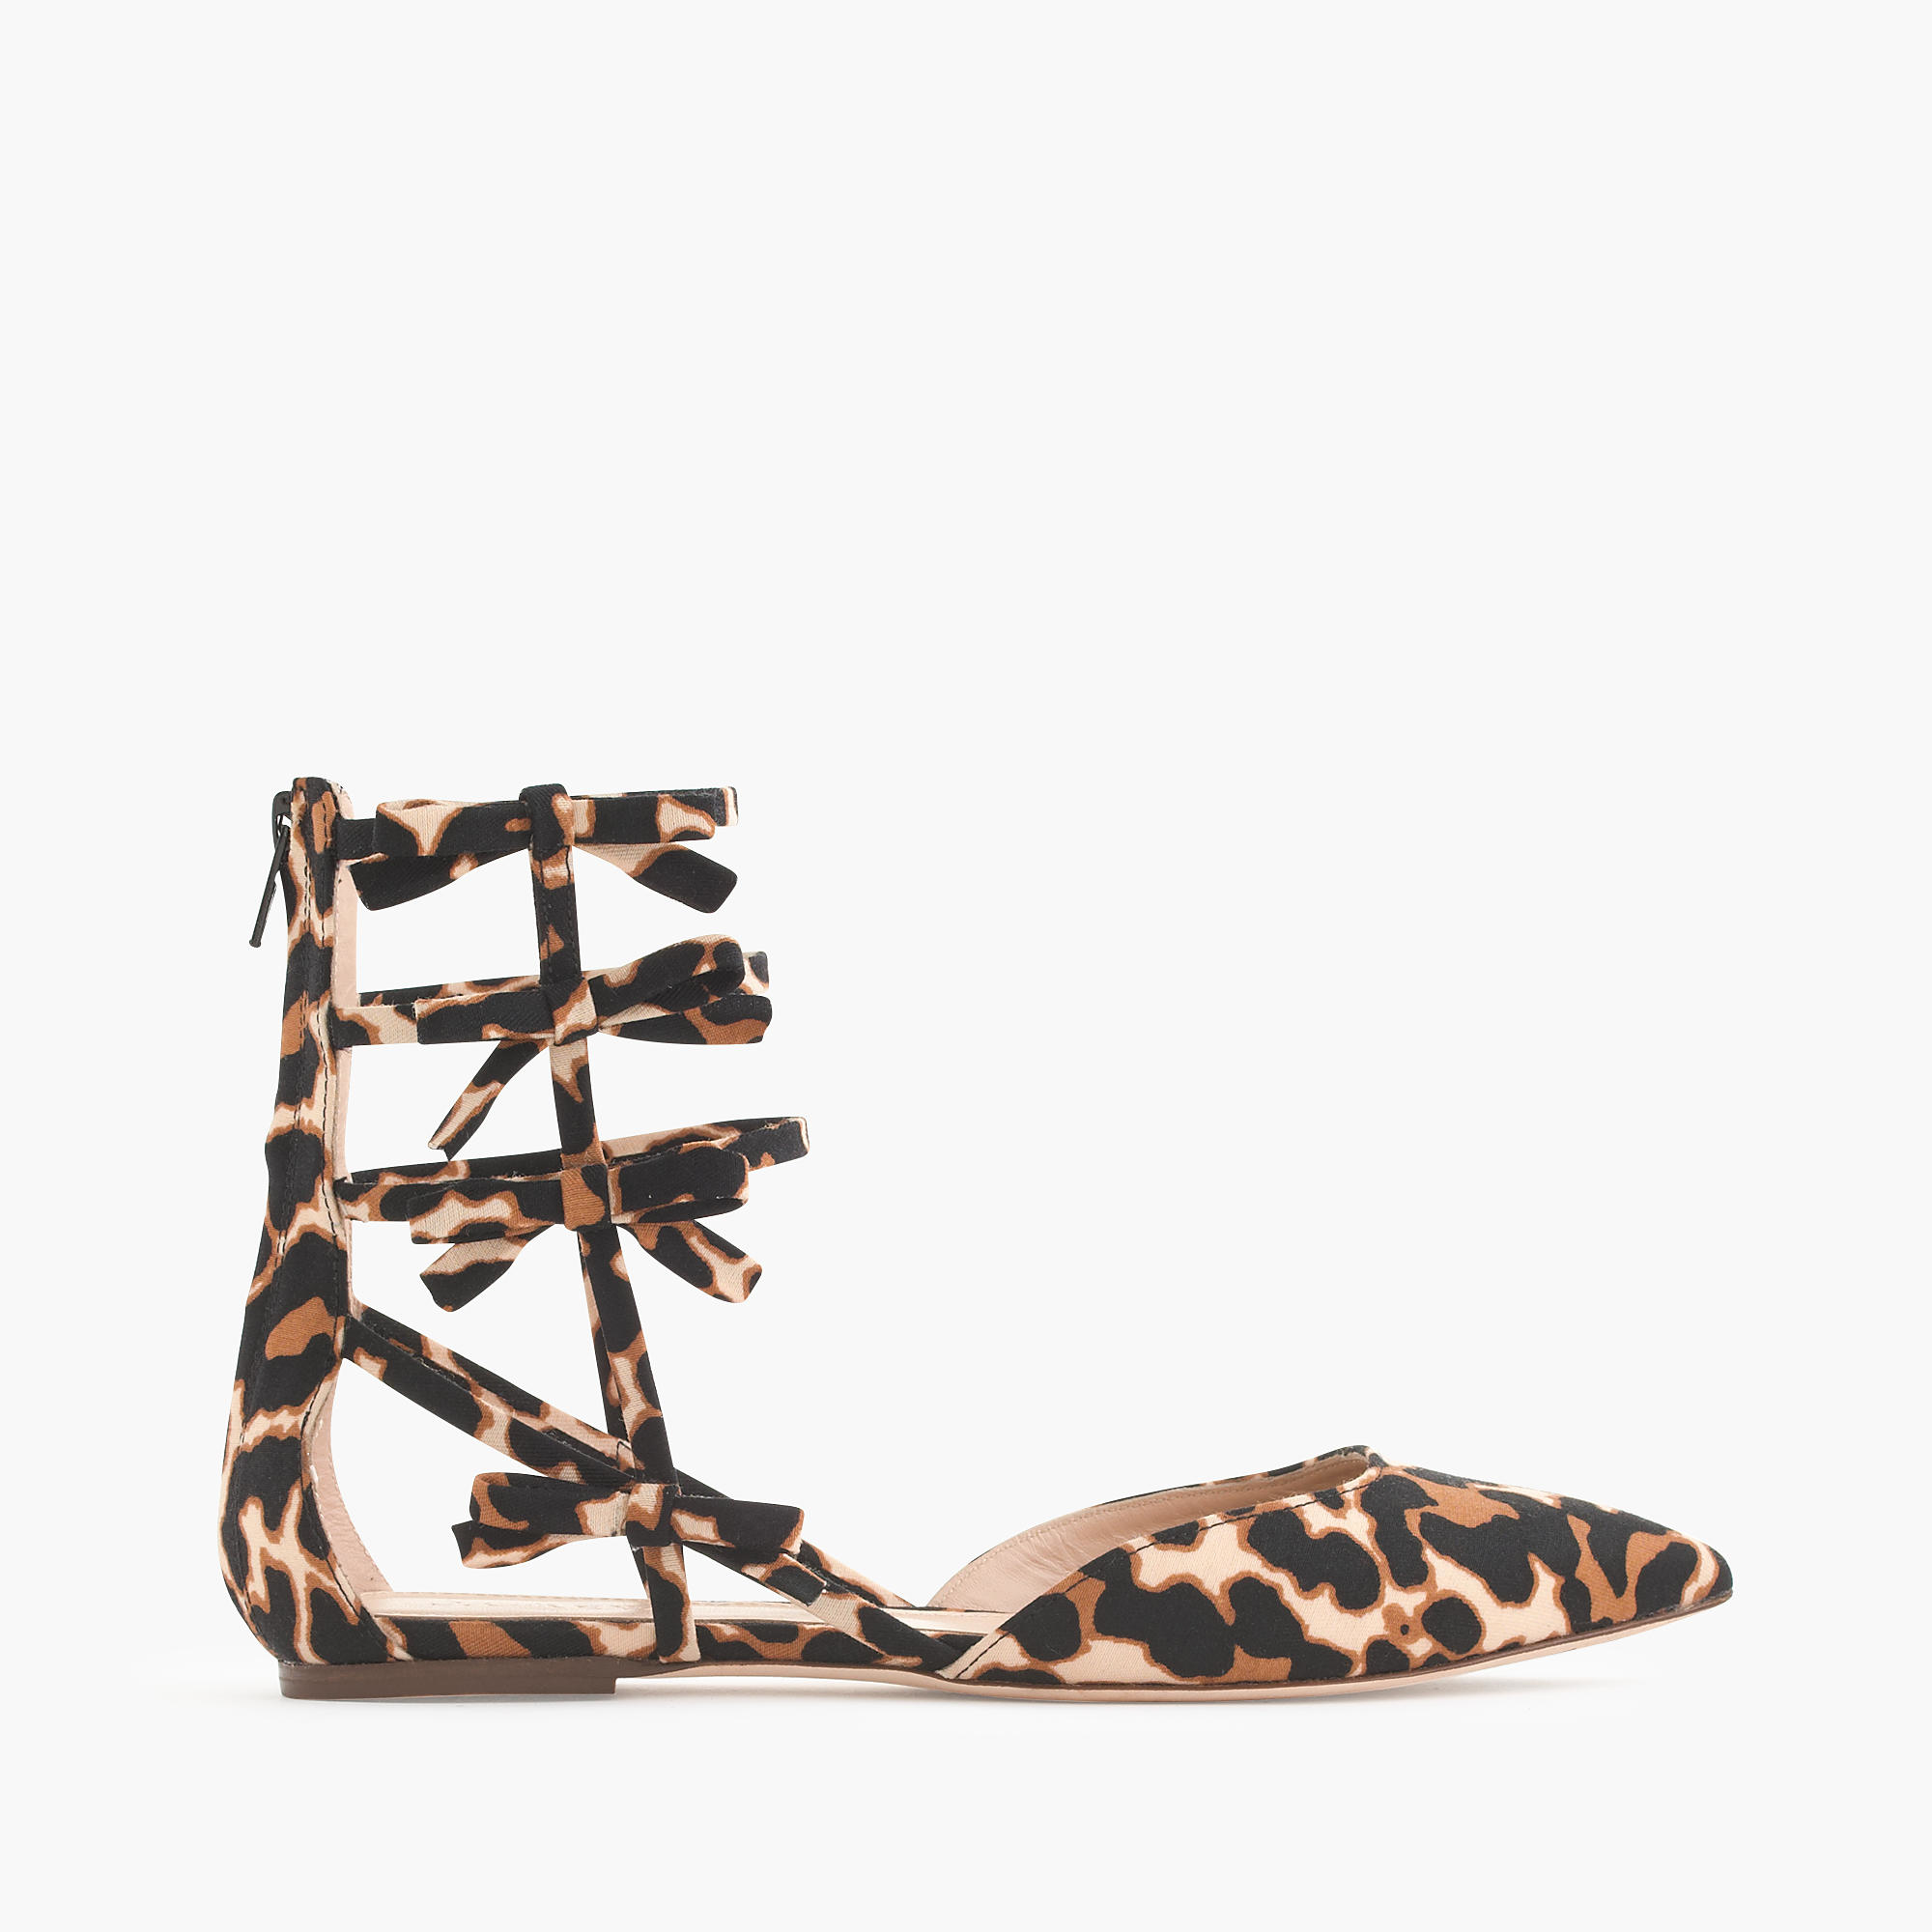 Leopard Flat Tan Ballerina Bow Pump out of 5 out of 5 rating Explanations the care provider gave you about your problem or condition out of 5 out of 5 rating.